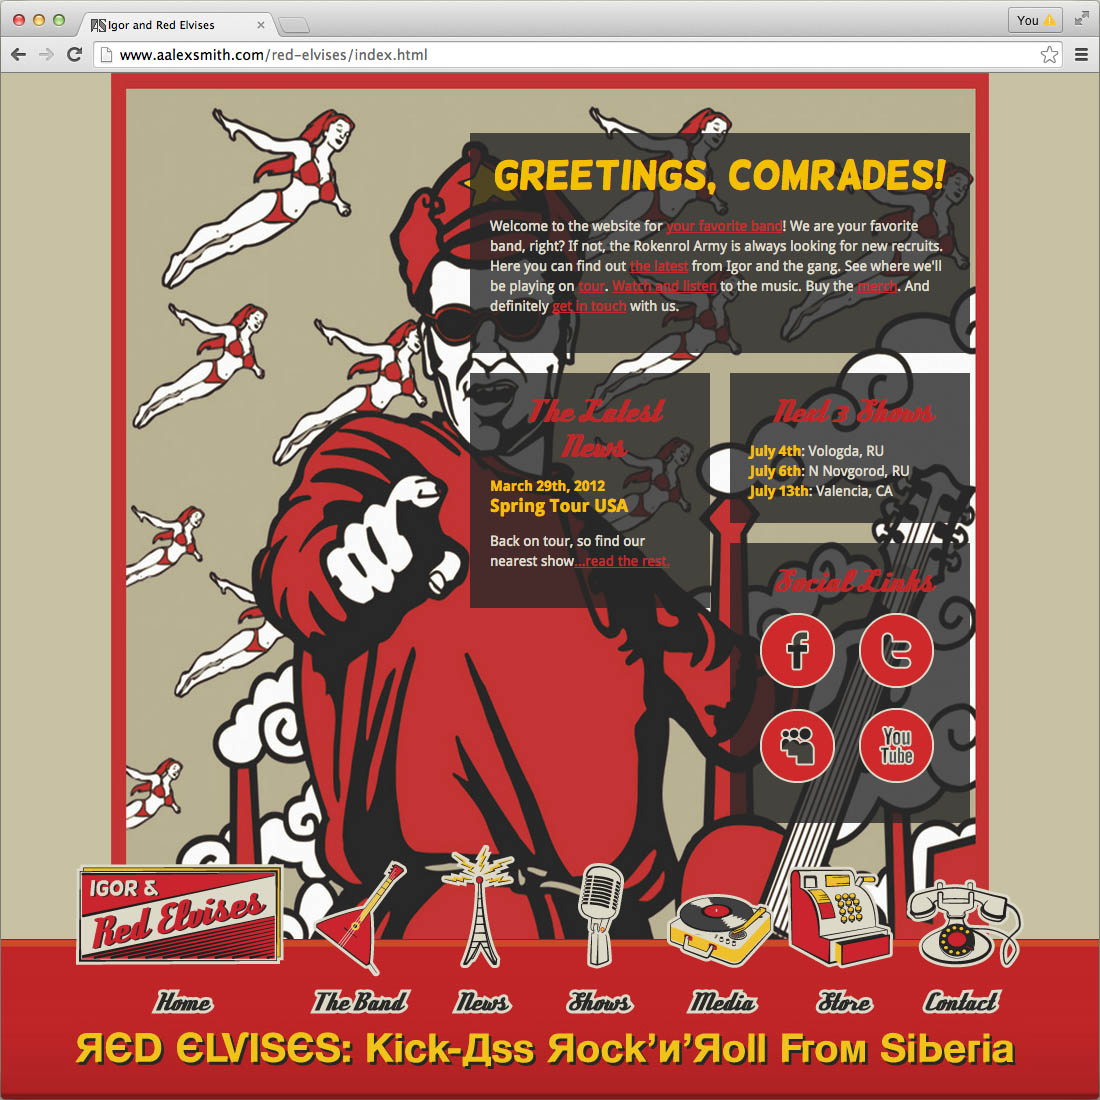 Red Elvises band website concept, home page